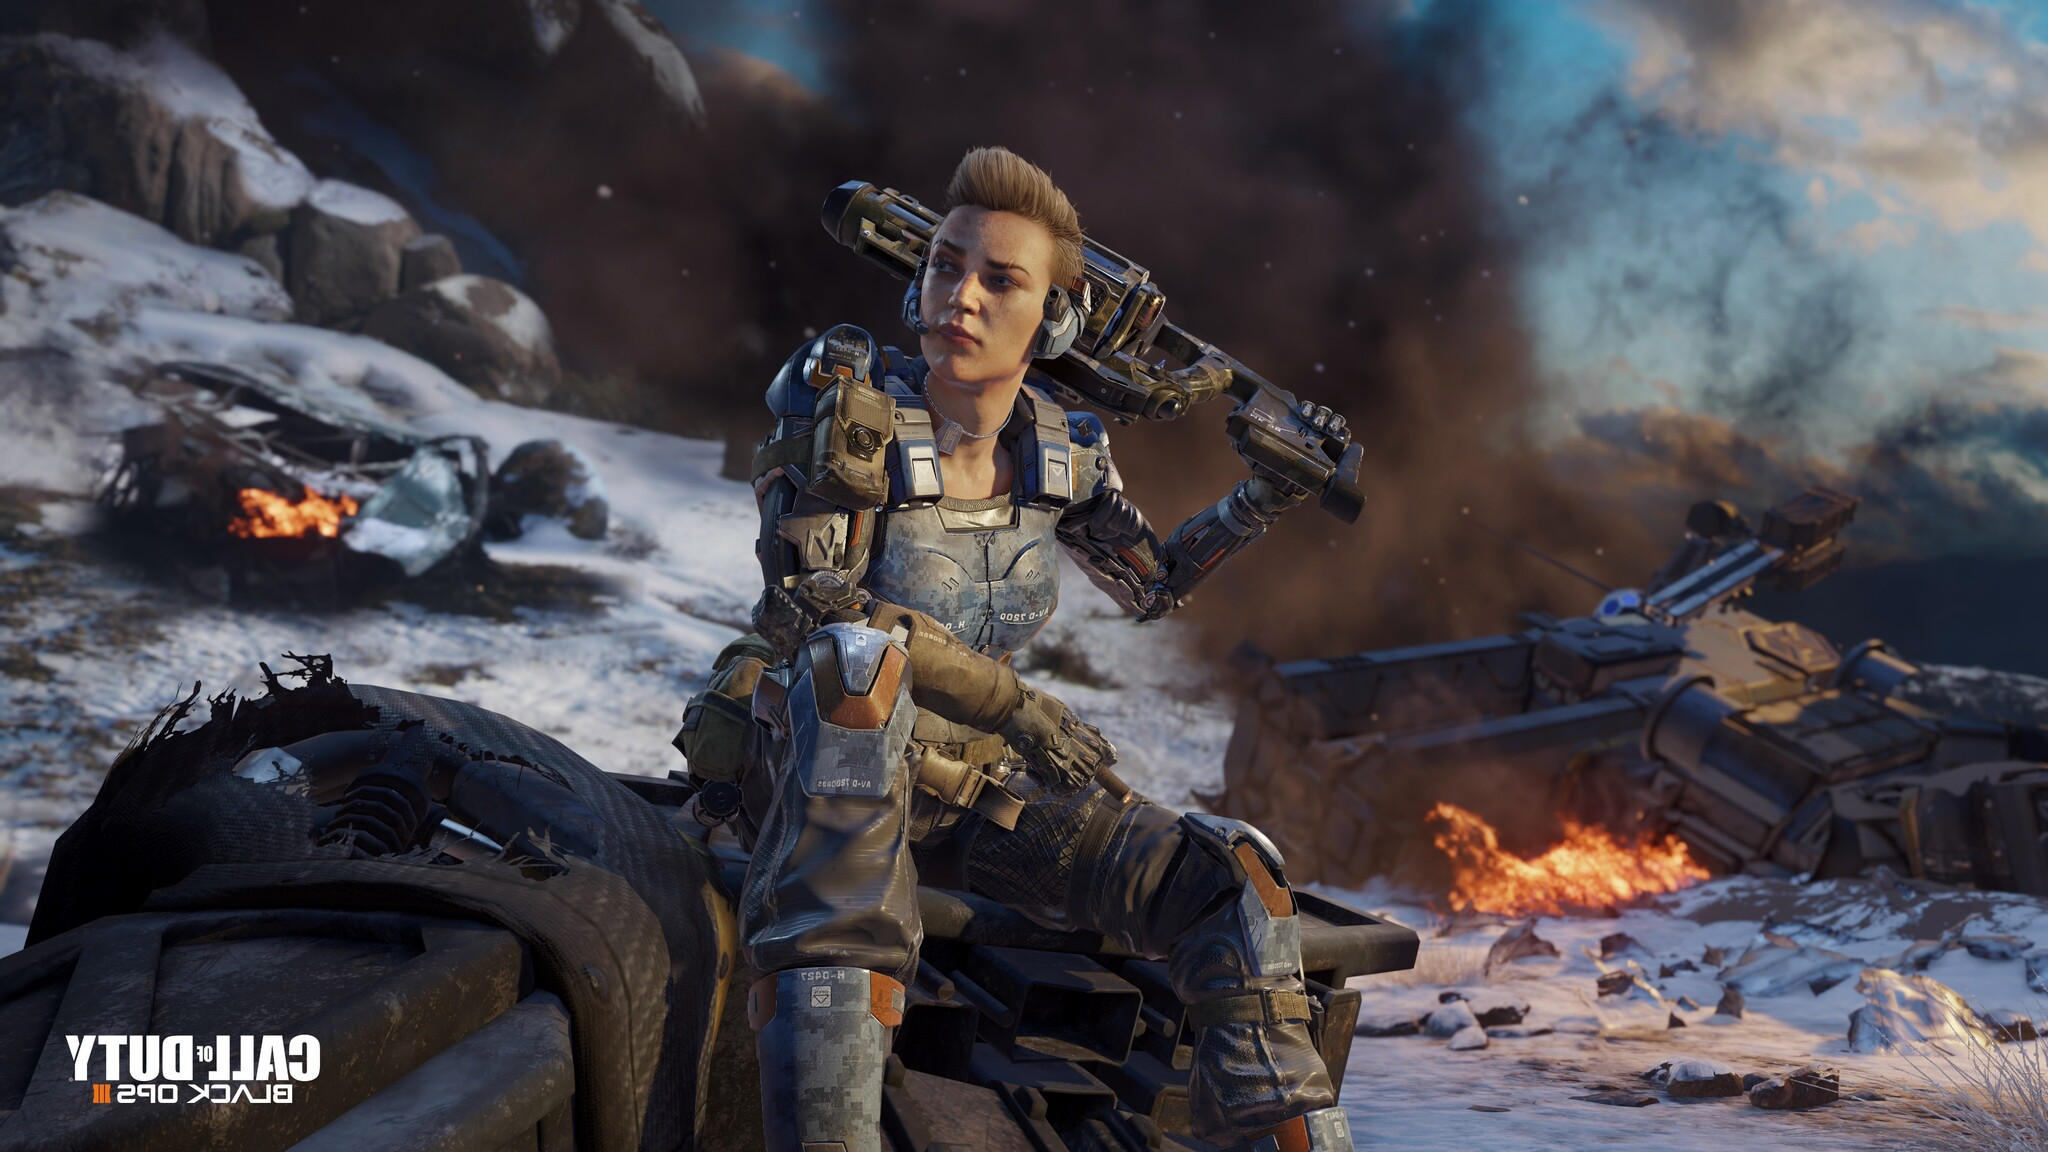 2048x1152 call of duty black ops 3 game 2048x1152